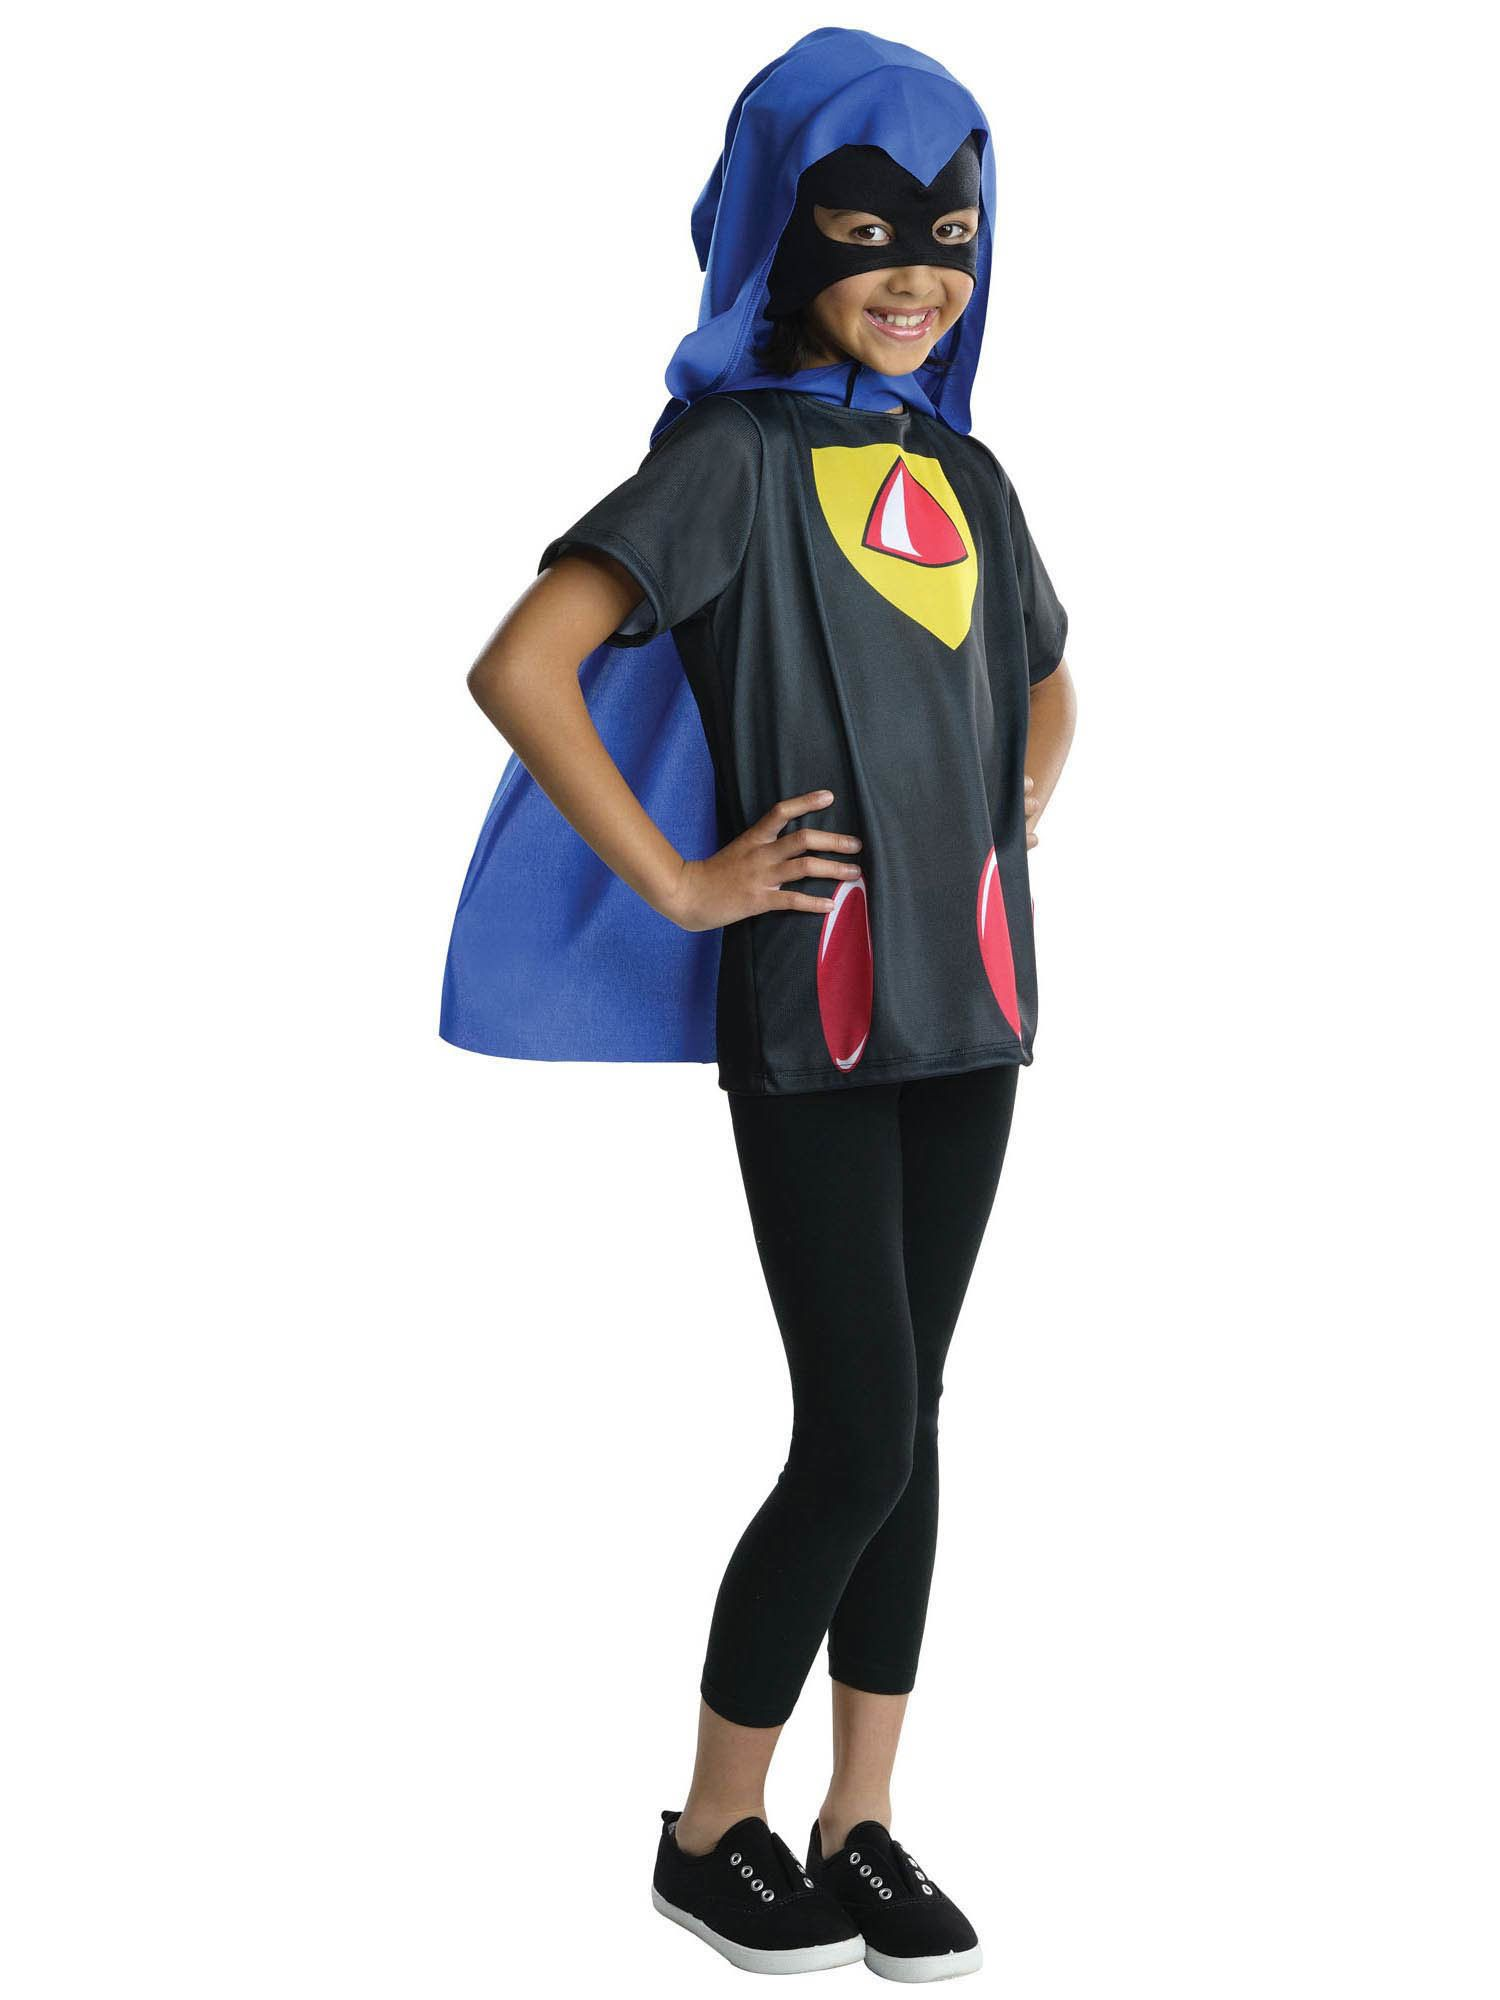 Deluxe Raven Child Costume Teen Titans Go